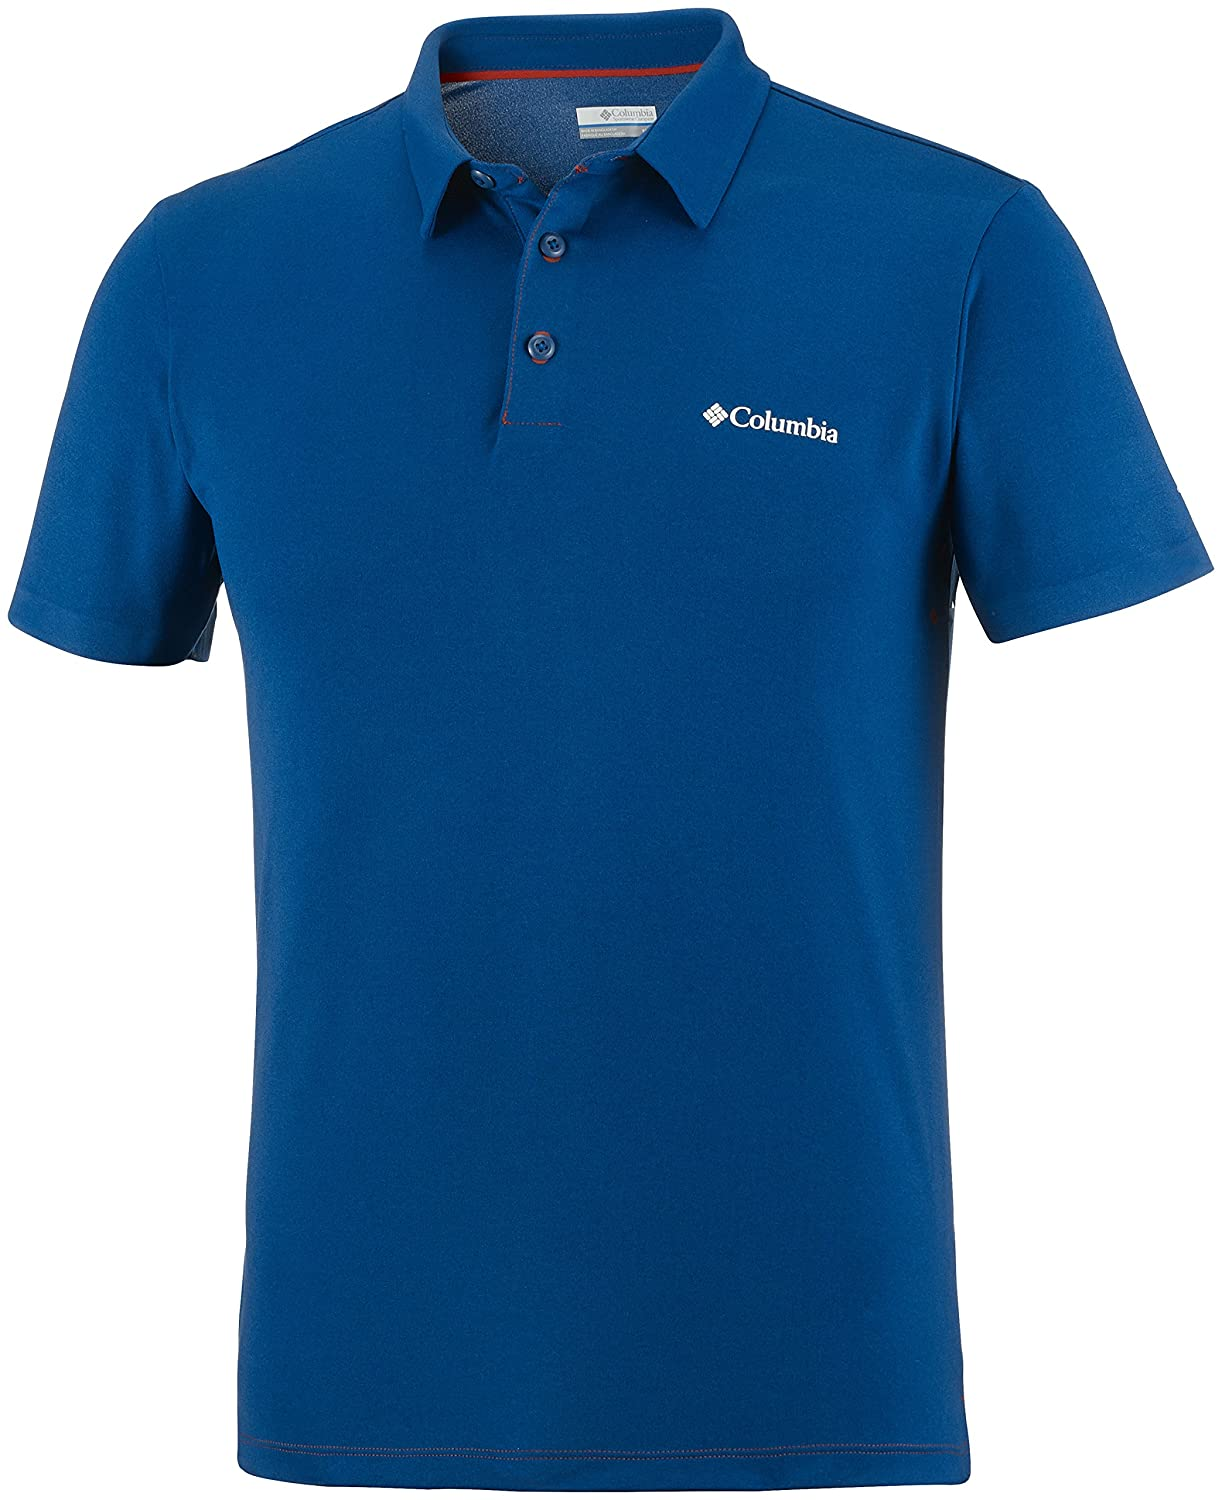 Columbia Triple Canyon Tech Polo